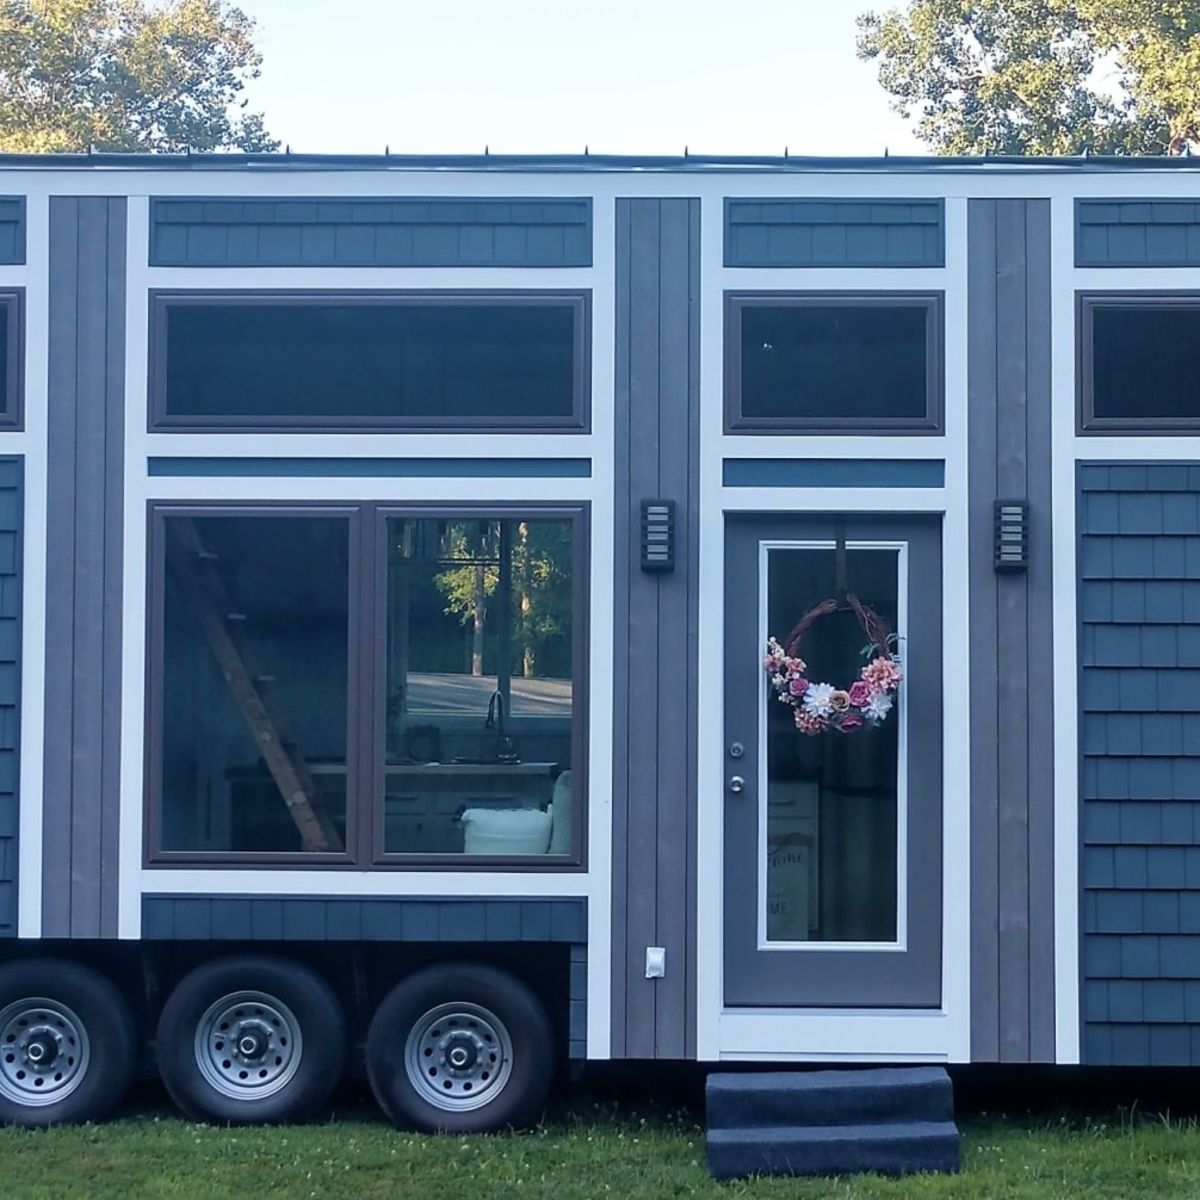 Kitchen Cabinets Evansville In: Tiny House For Sale In EVANSVILLE